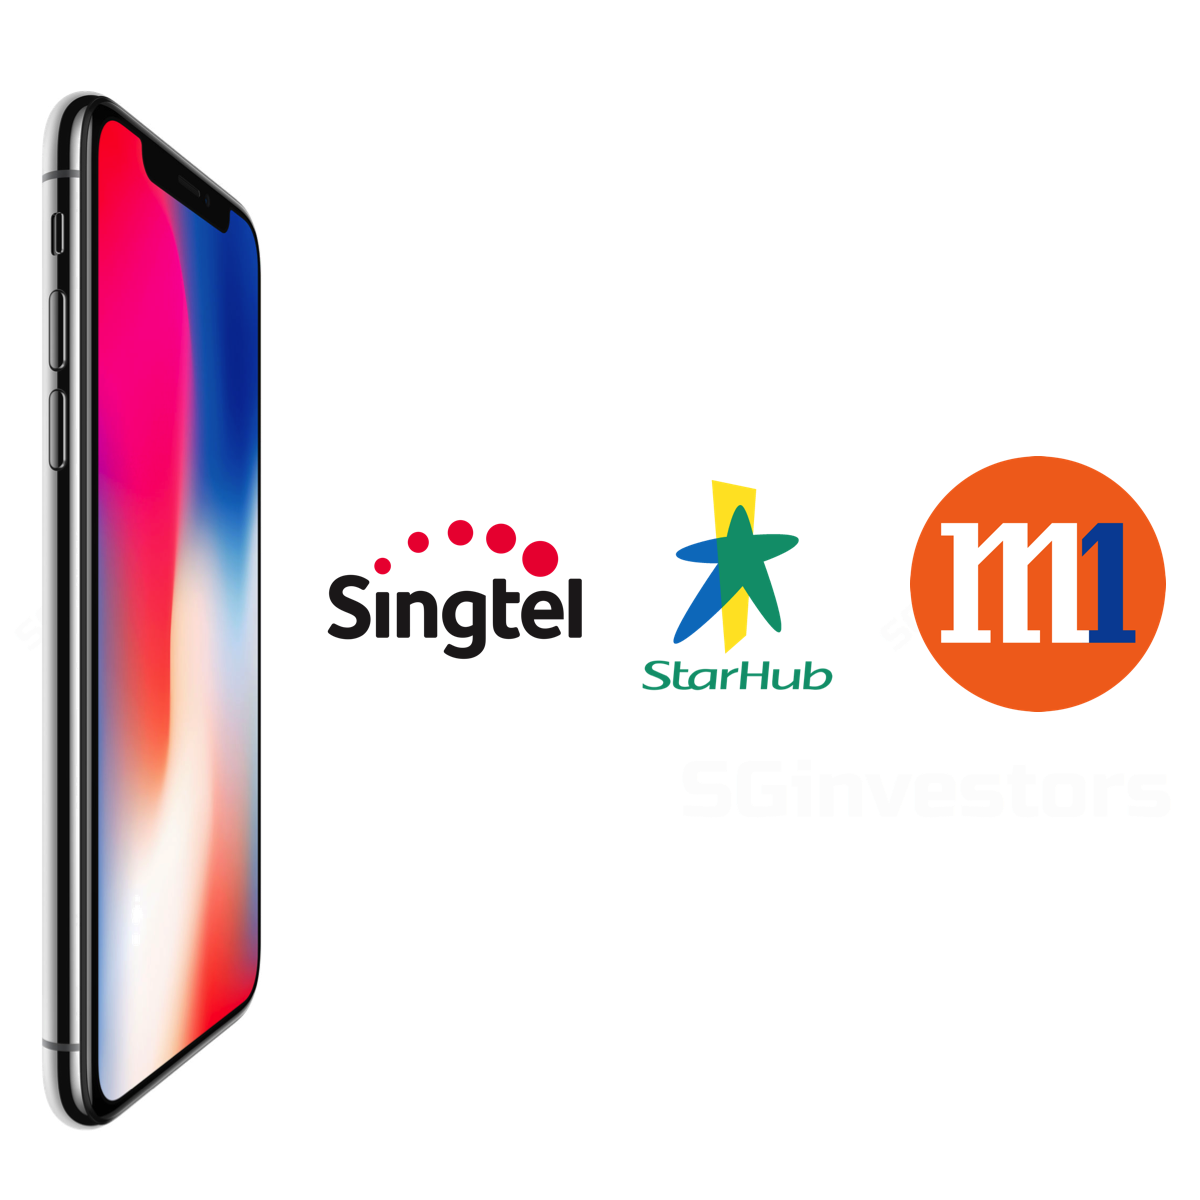 Singapore Telcos - Maybank Kim Eng 2017-09-19: IPhone Handset Plans – Early Adopter Rates